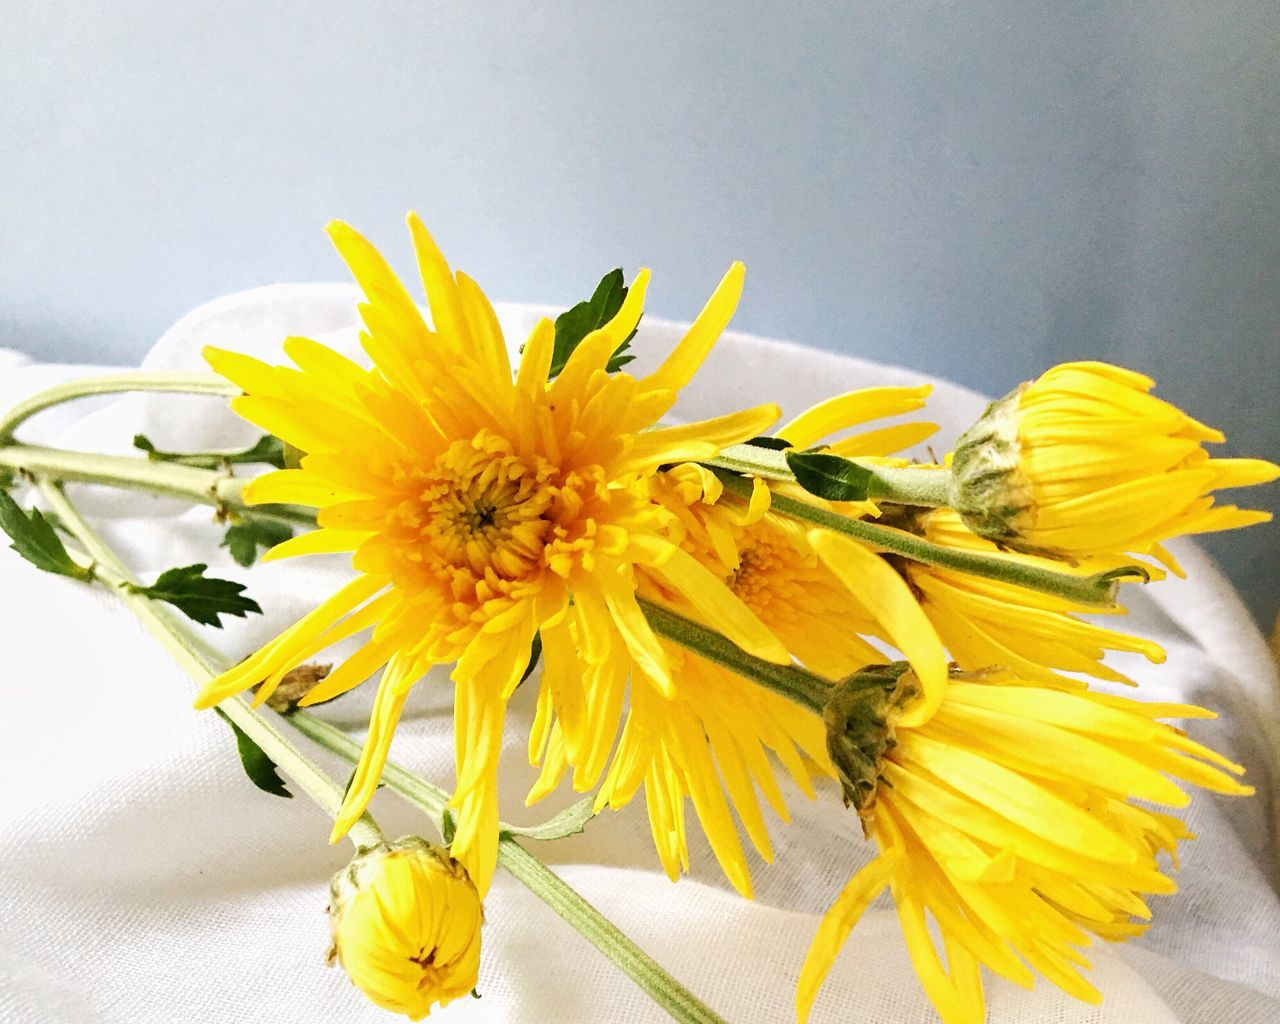 Flower Fragility Petal Freshness Yellow Flower Head Beauty In Nature No People Indoors  Flower Arrangement Gerbera Daisy Close-up EyeEm Best Shots The Week On EyeEem Eyeem Market VSCO Cam StillLifePhotography EyeEm Gallery Stillness